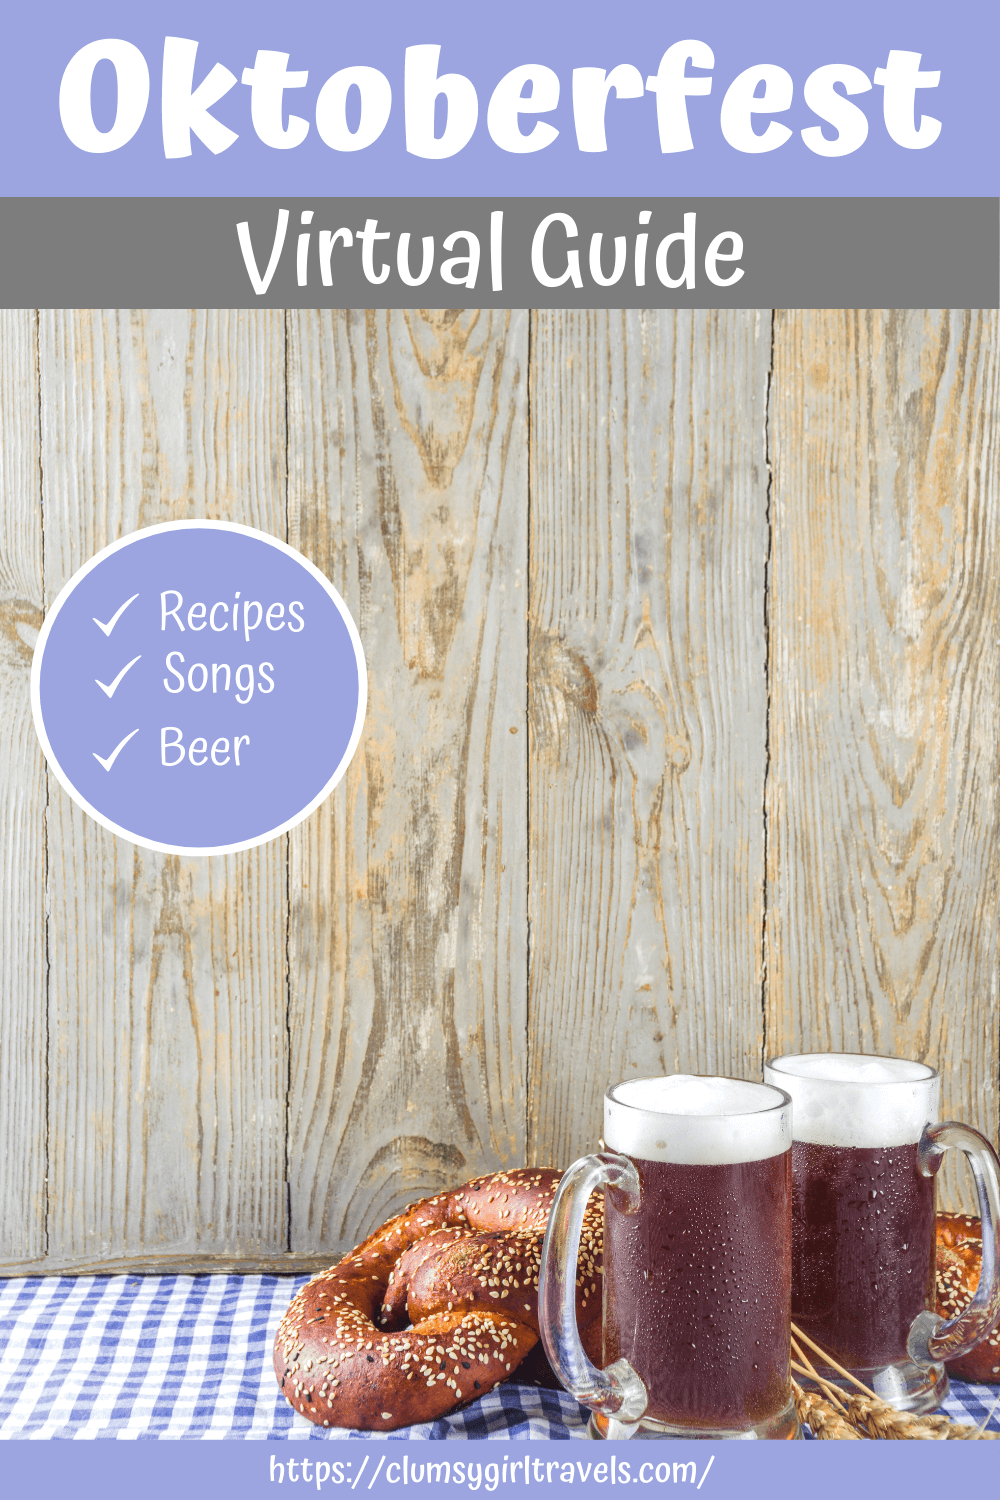 Celebrate Oktoberfest at home with this Oktoberfest virtual guide. Make recipes, drink beer and sing songs at the tops of your lungs. #oktoberfest #oktoberfestathome